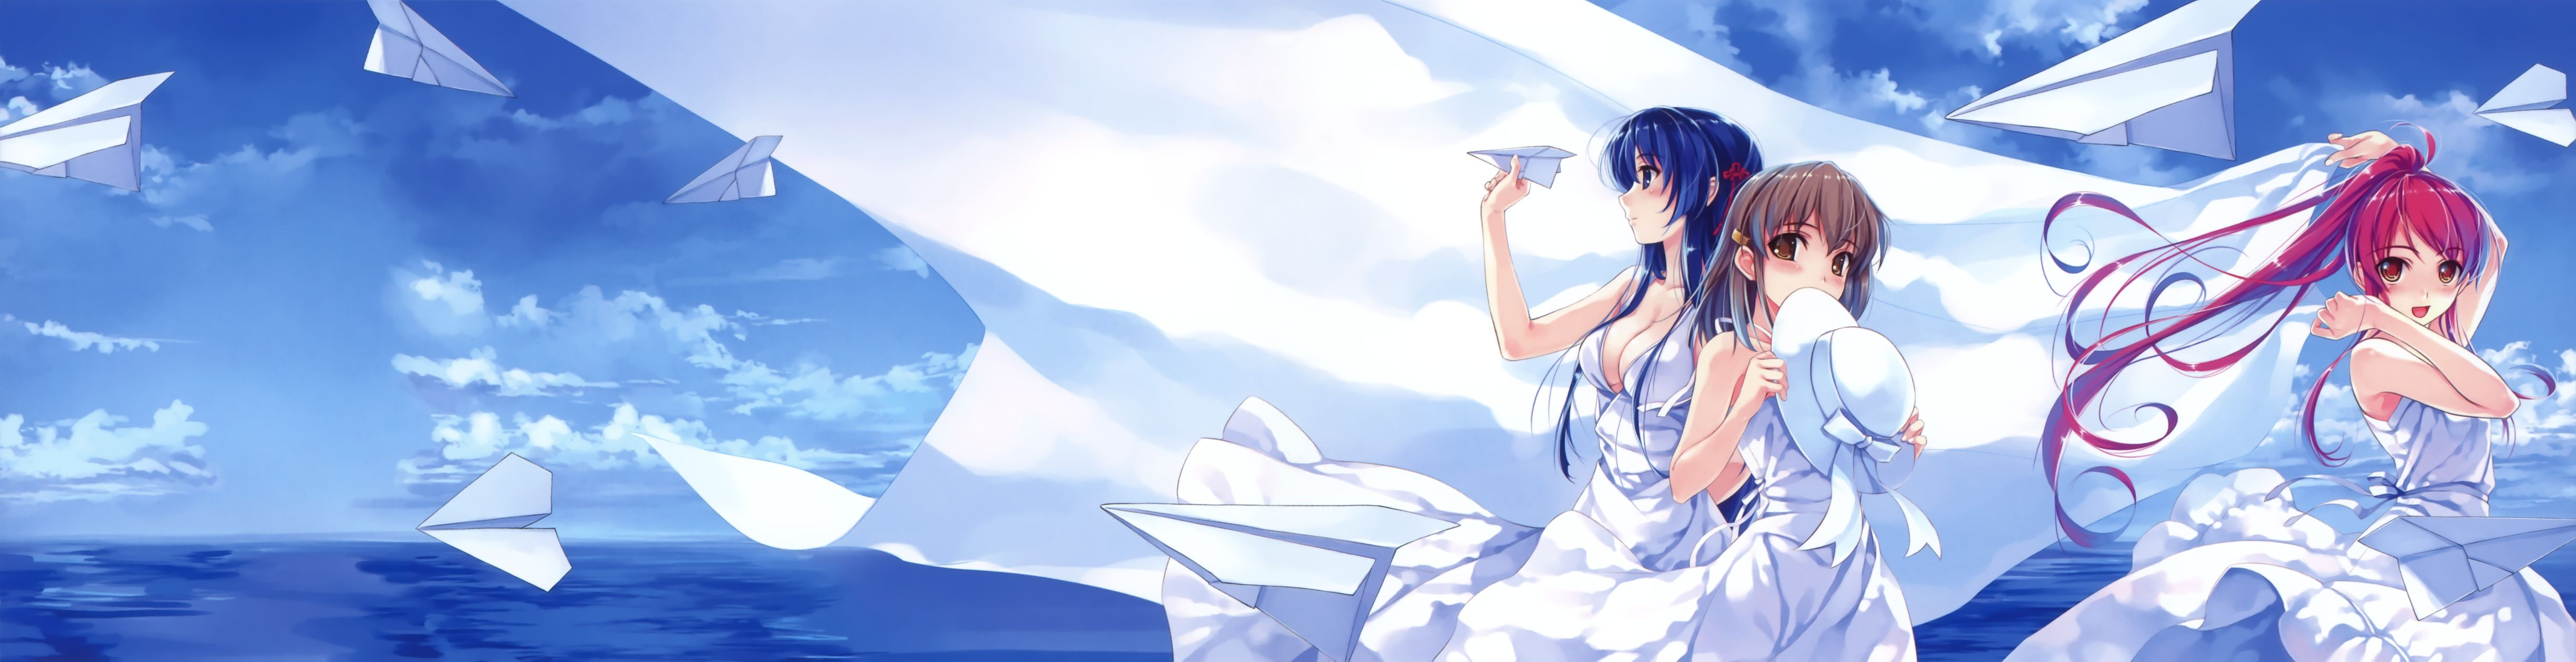 Nice Images Collection: Deep Blue Sky & Pure White Wings Desktop Wallpapers